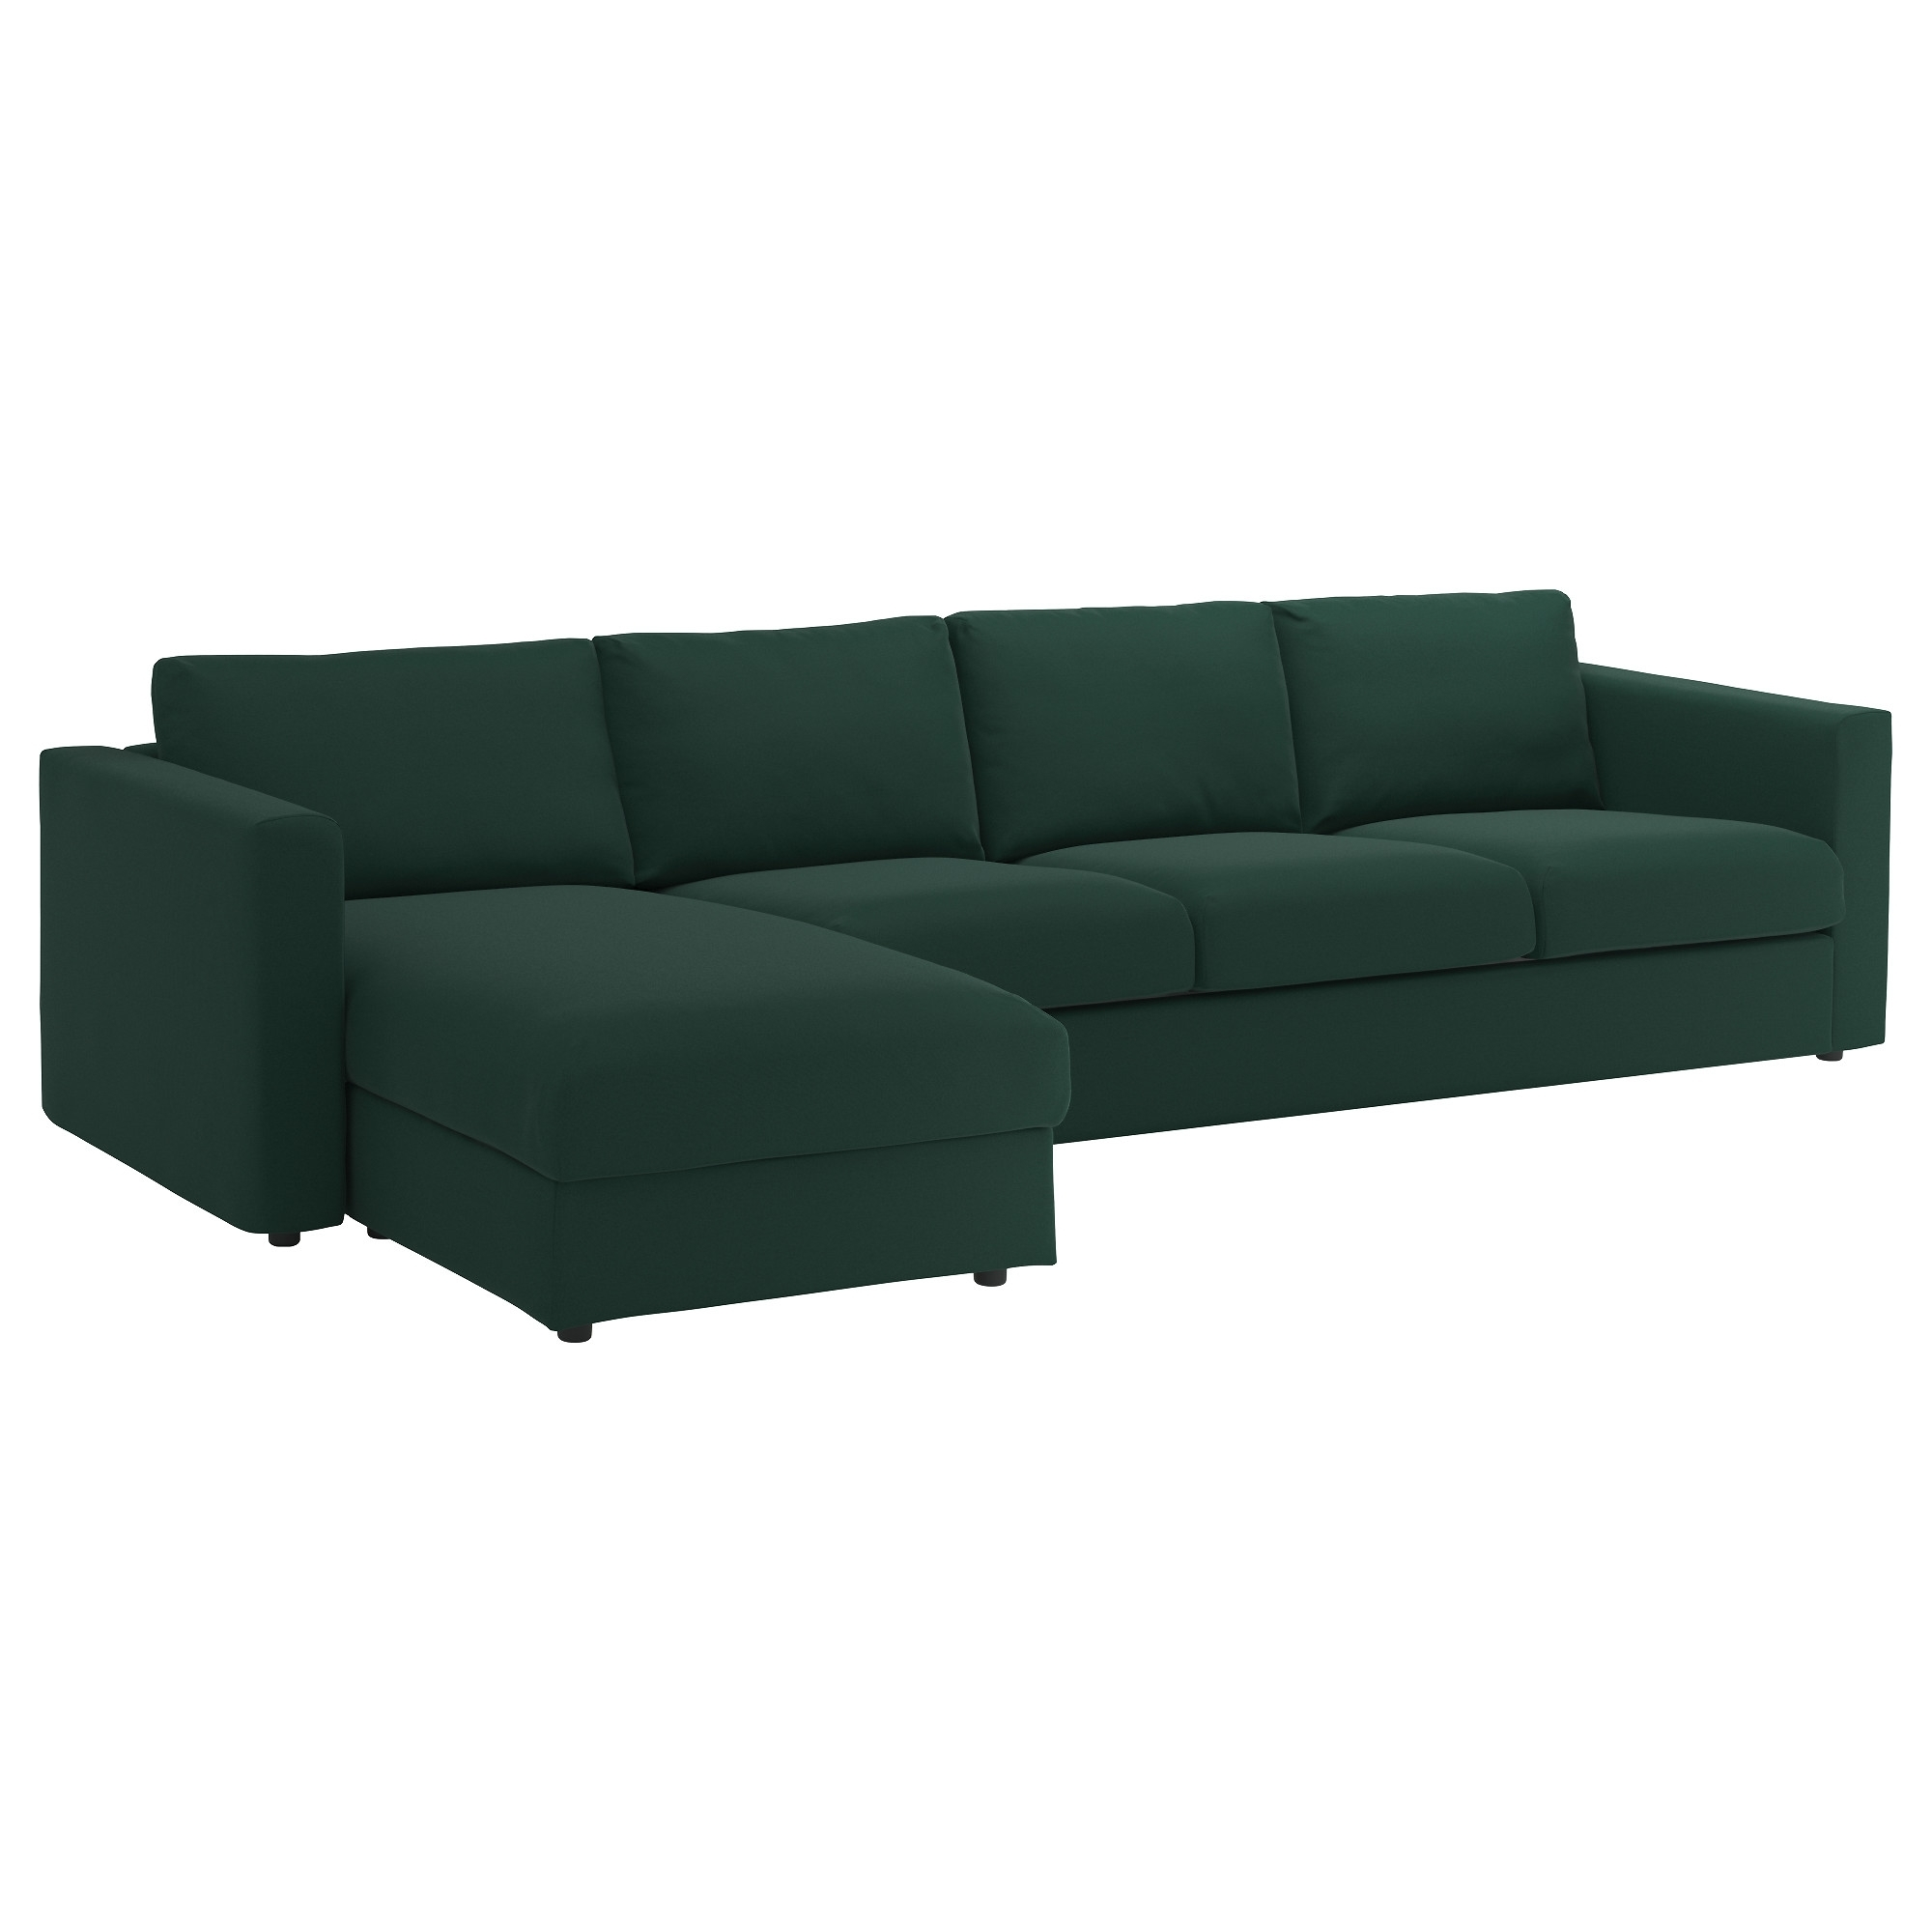 Jedd Fabric Reclining Sectional Sofa Reviews Sofas Contemporary With Most Recent Jedd Fabric Reclining Sectional Sofas (View 19 of 20)